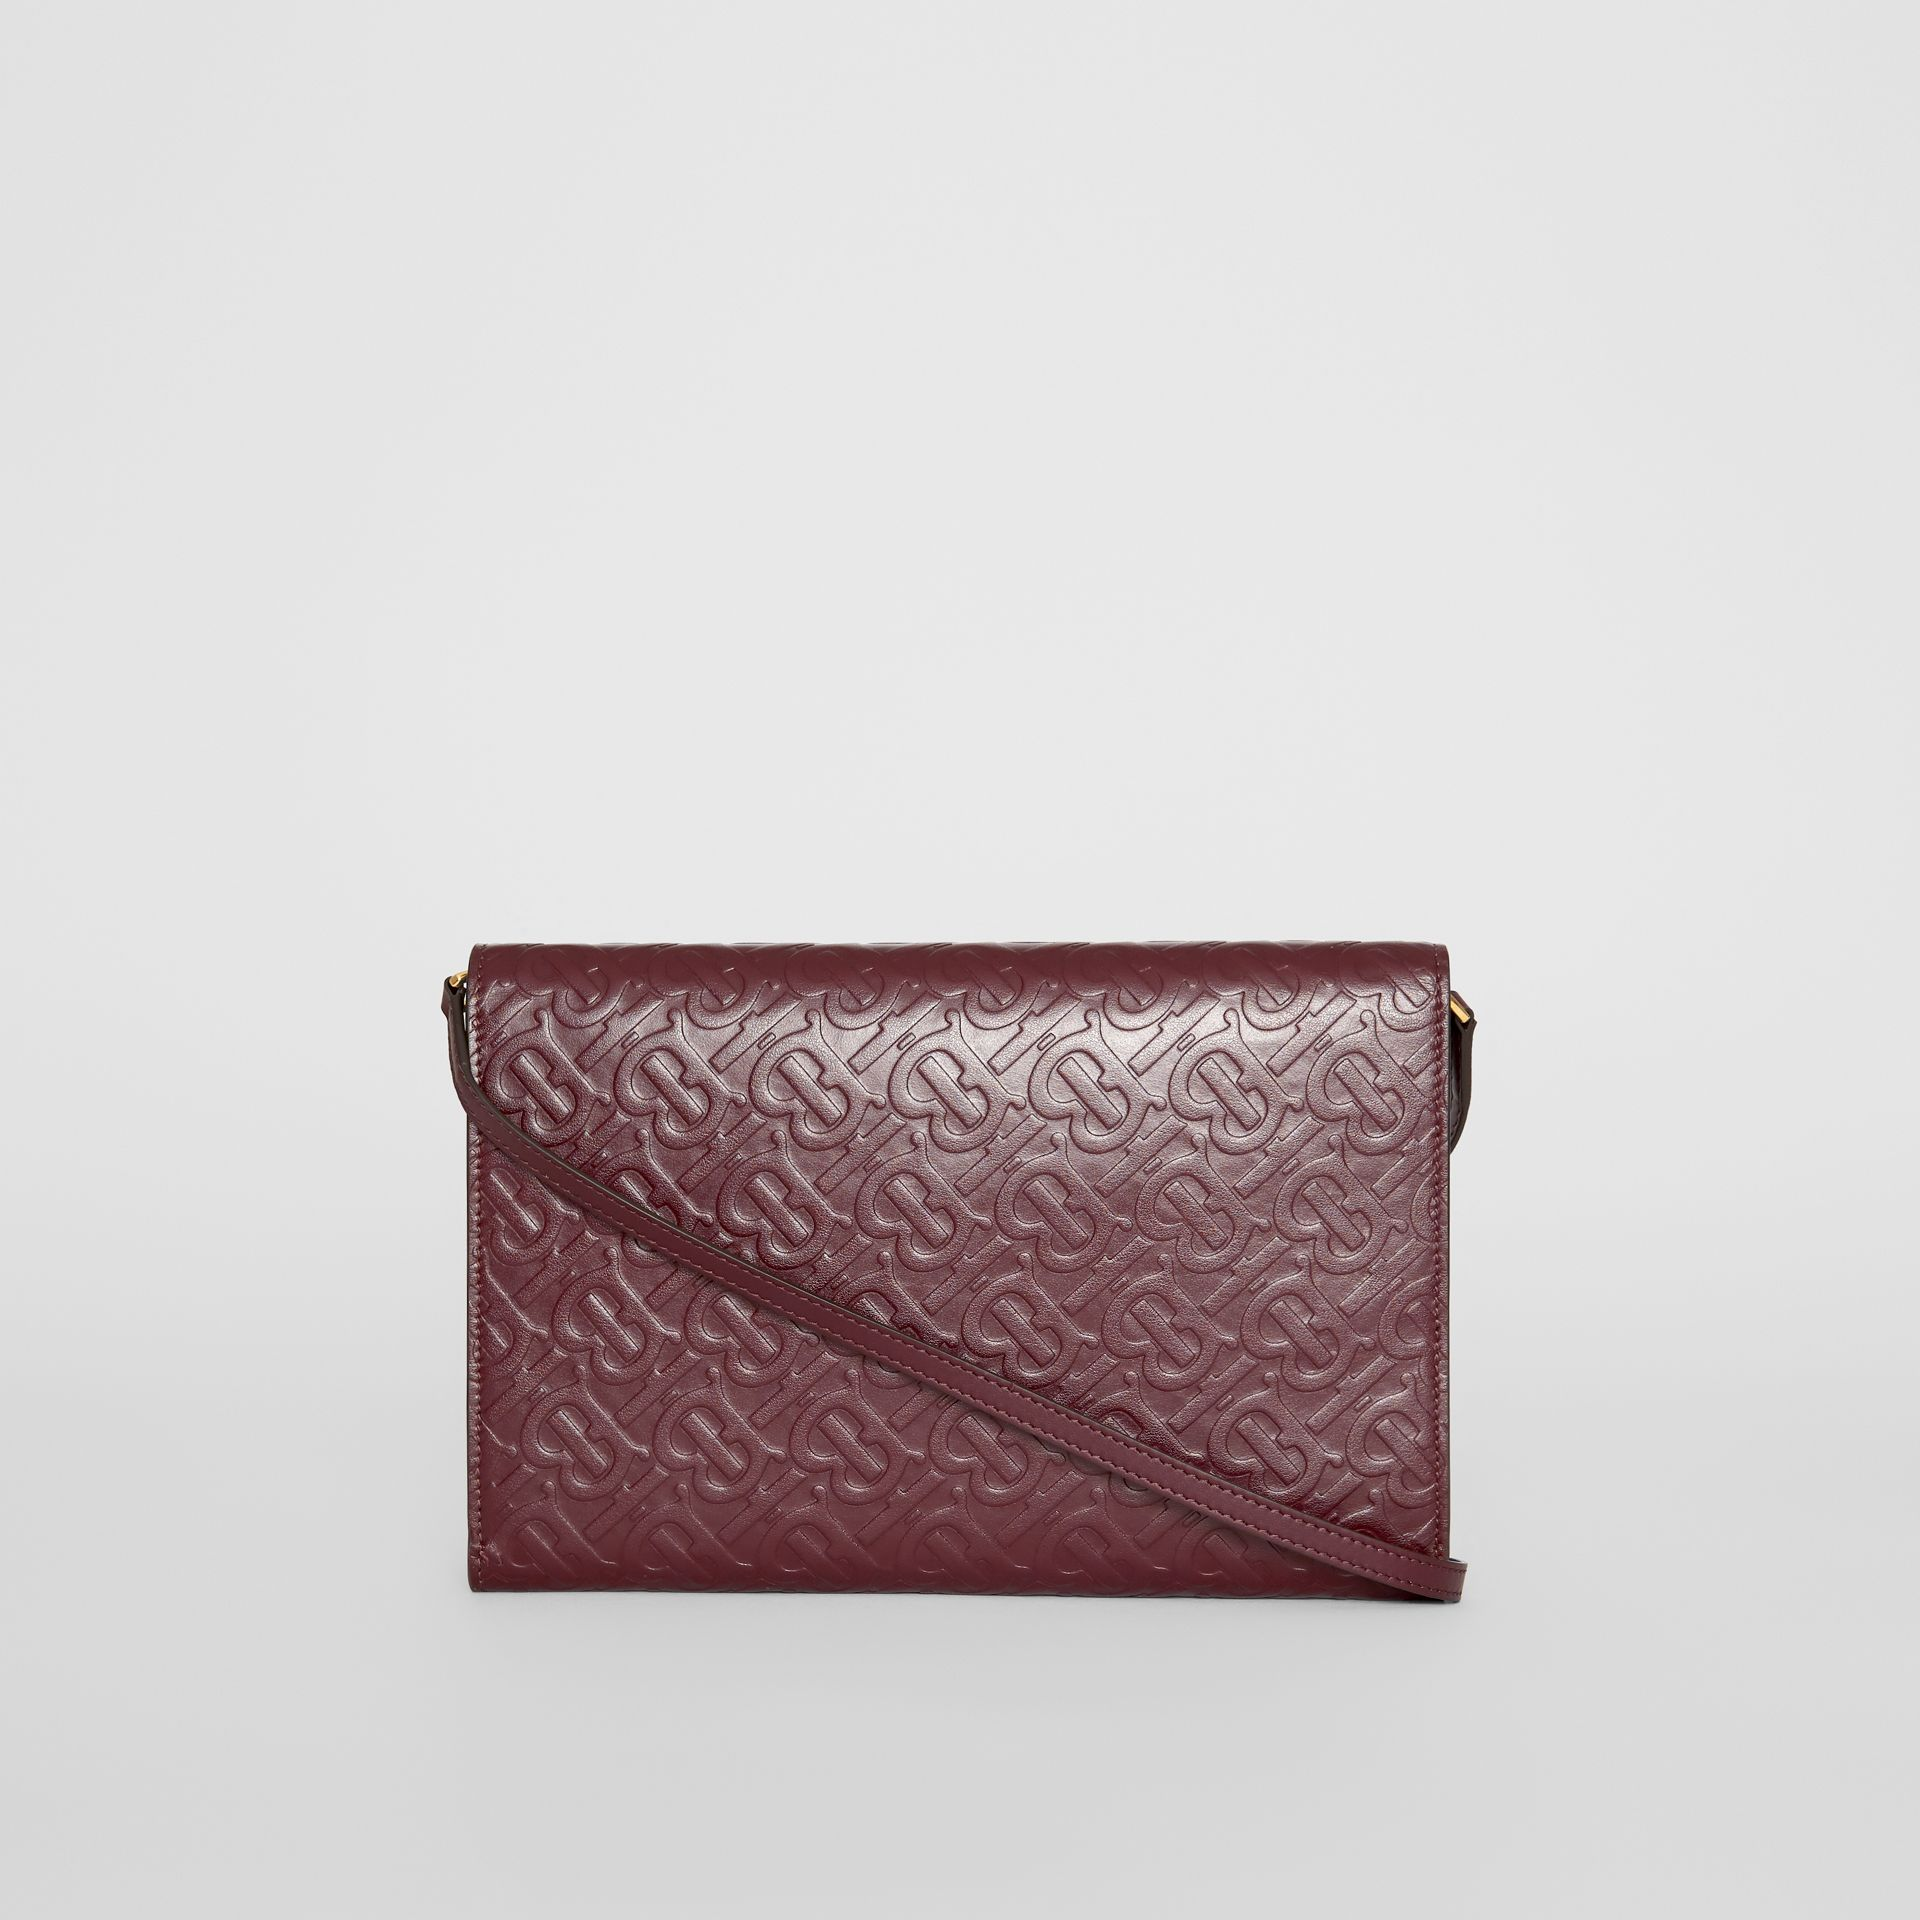 Monogram Leather Bag with Detachable Strap in Oxblood - Women | Burberry Canada - gallery image 5